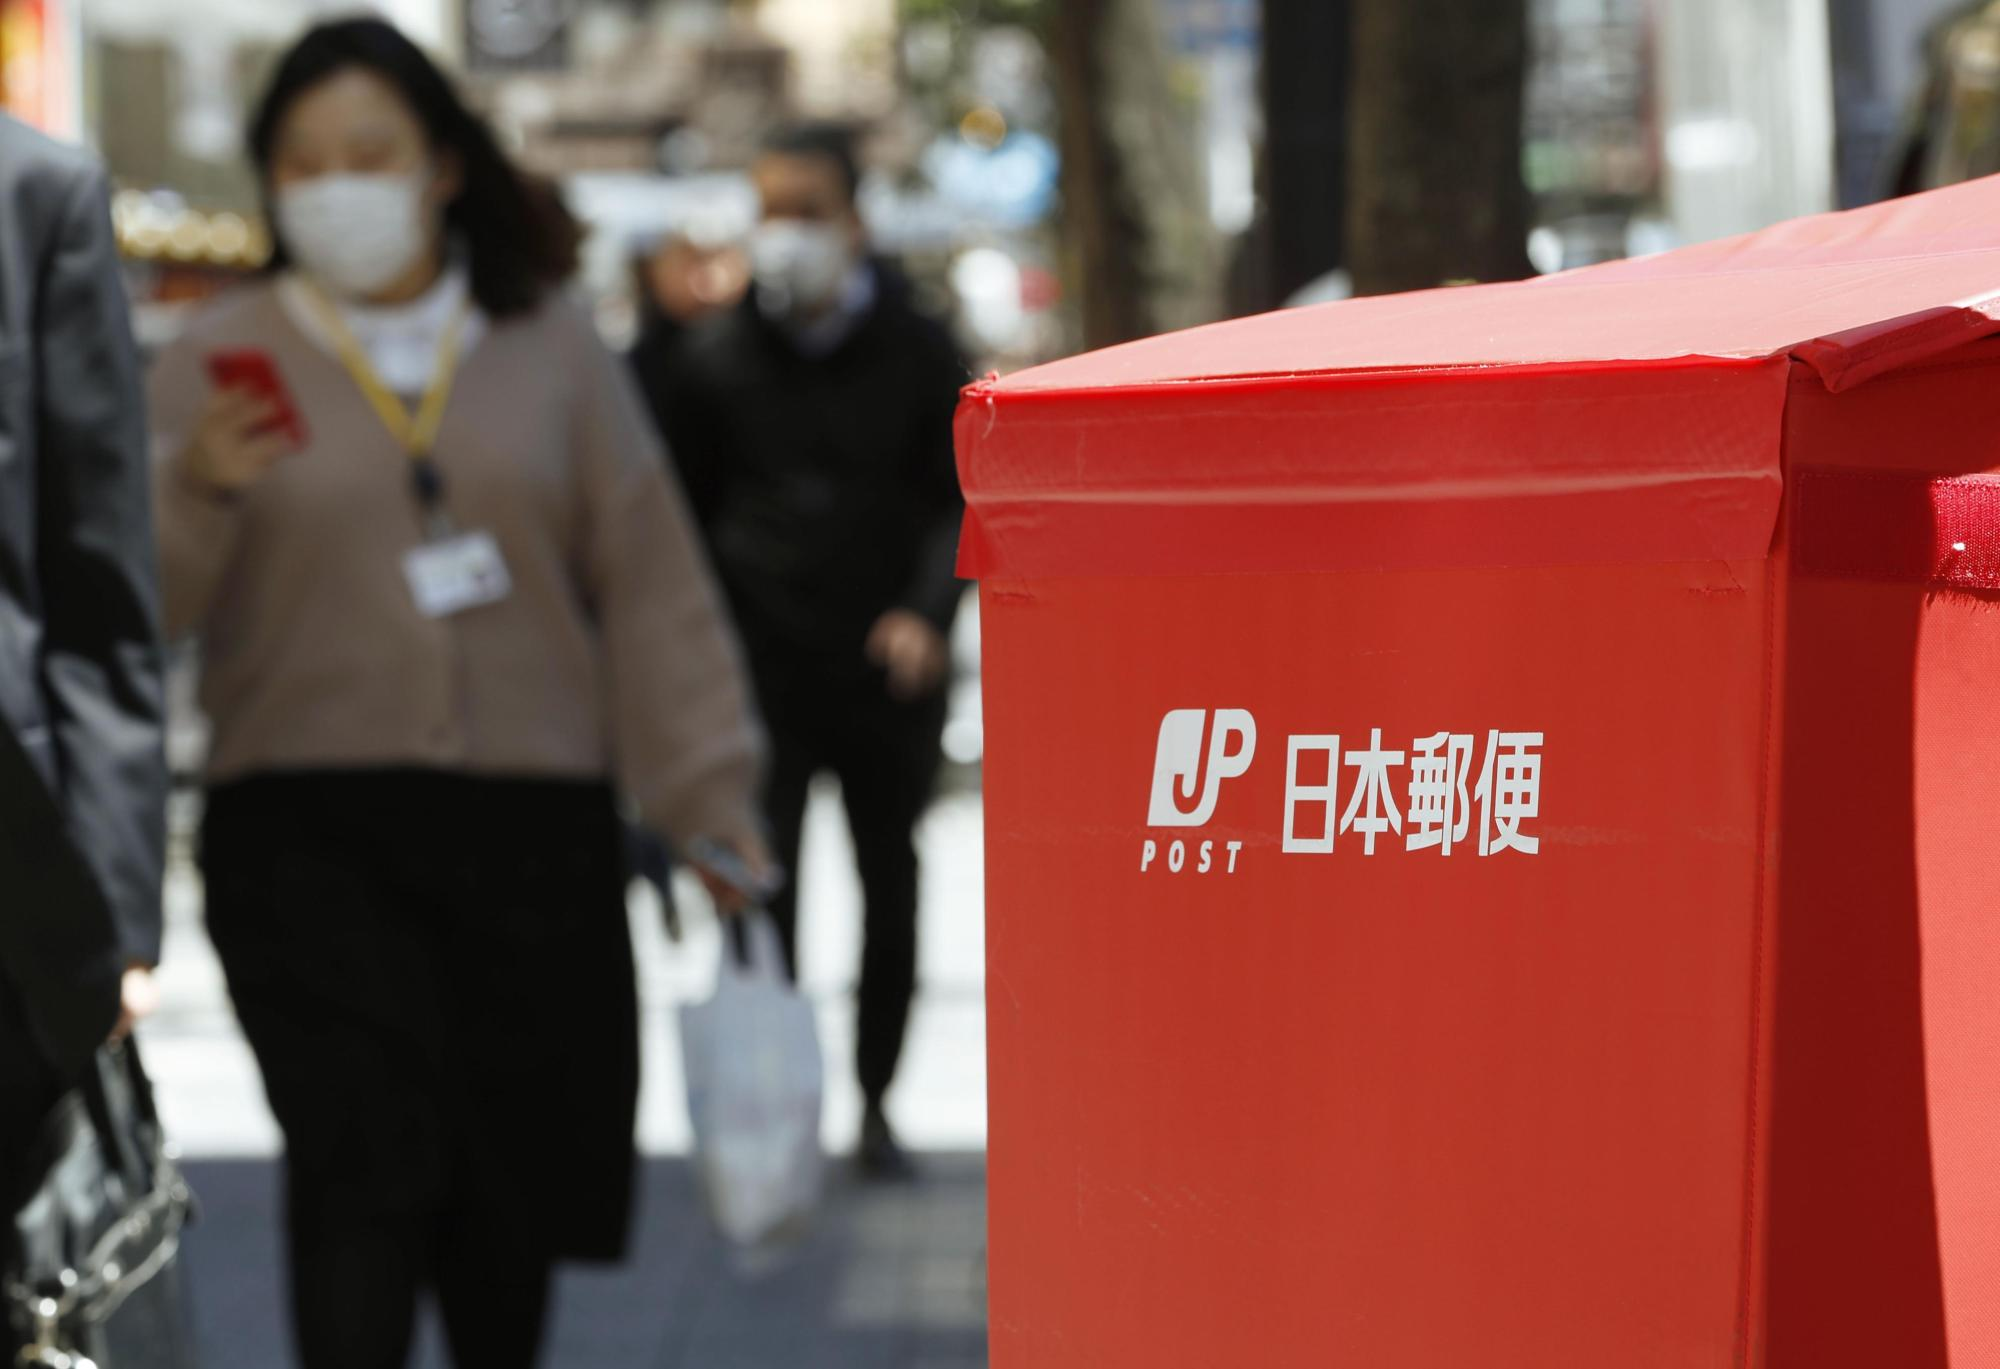 Post office executives in Tokyo are accused of embezzling ¥540 million by selling used stamps. | KYODO